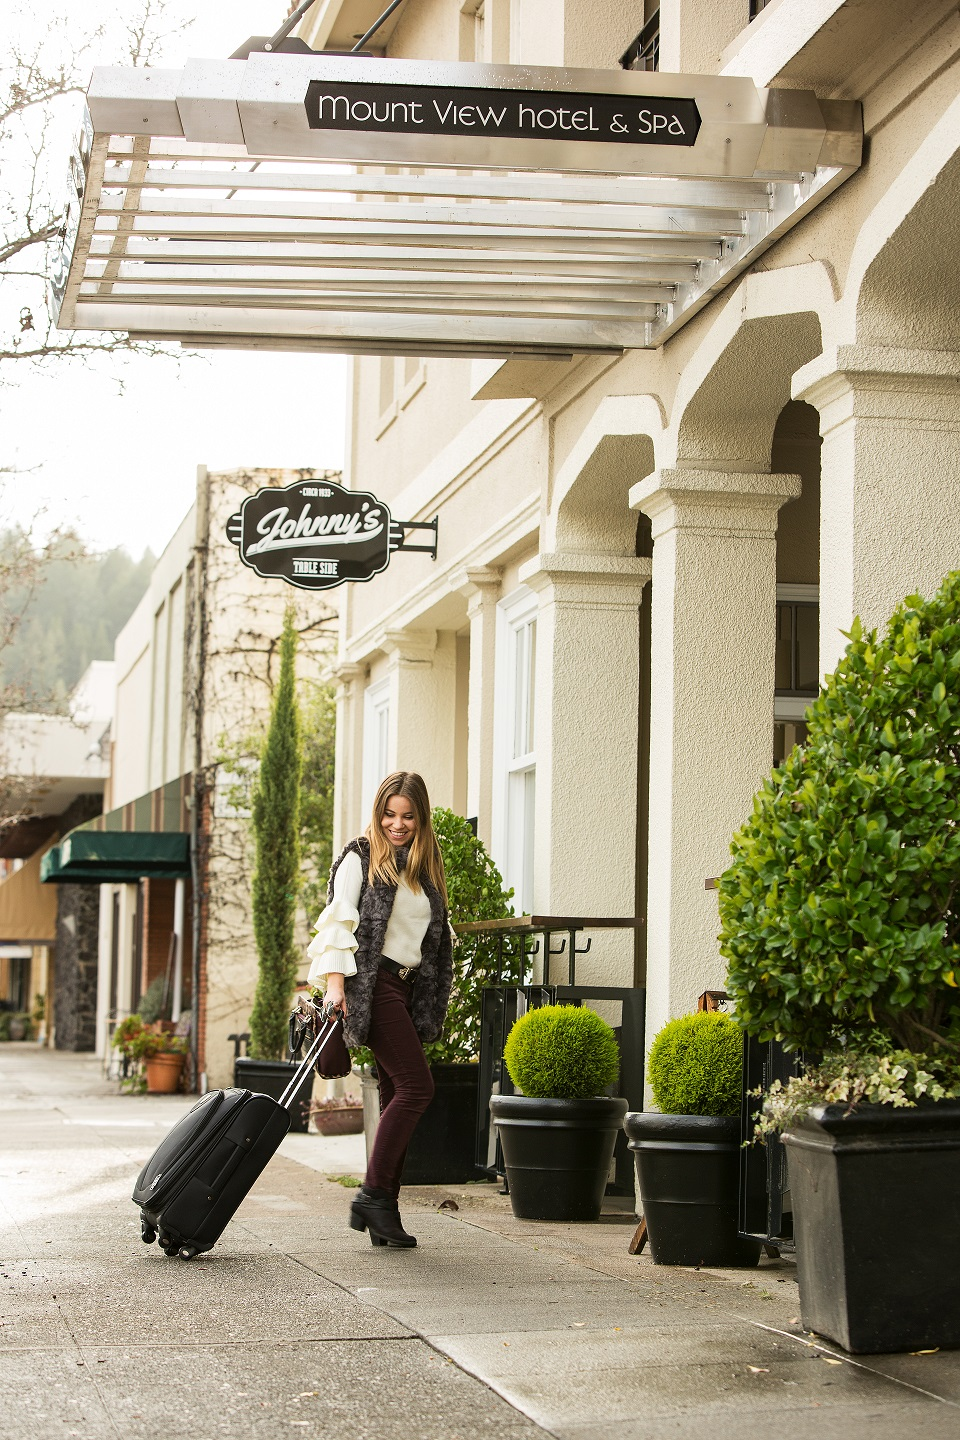 Mount View Hotel & SPA weekend escape Calistoga